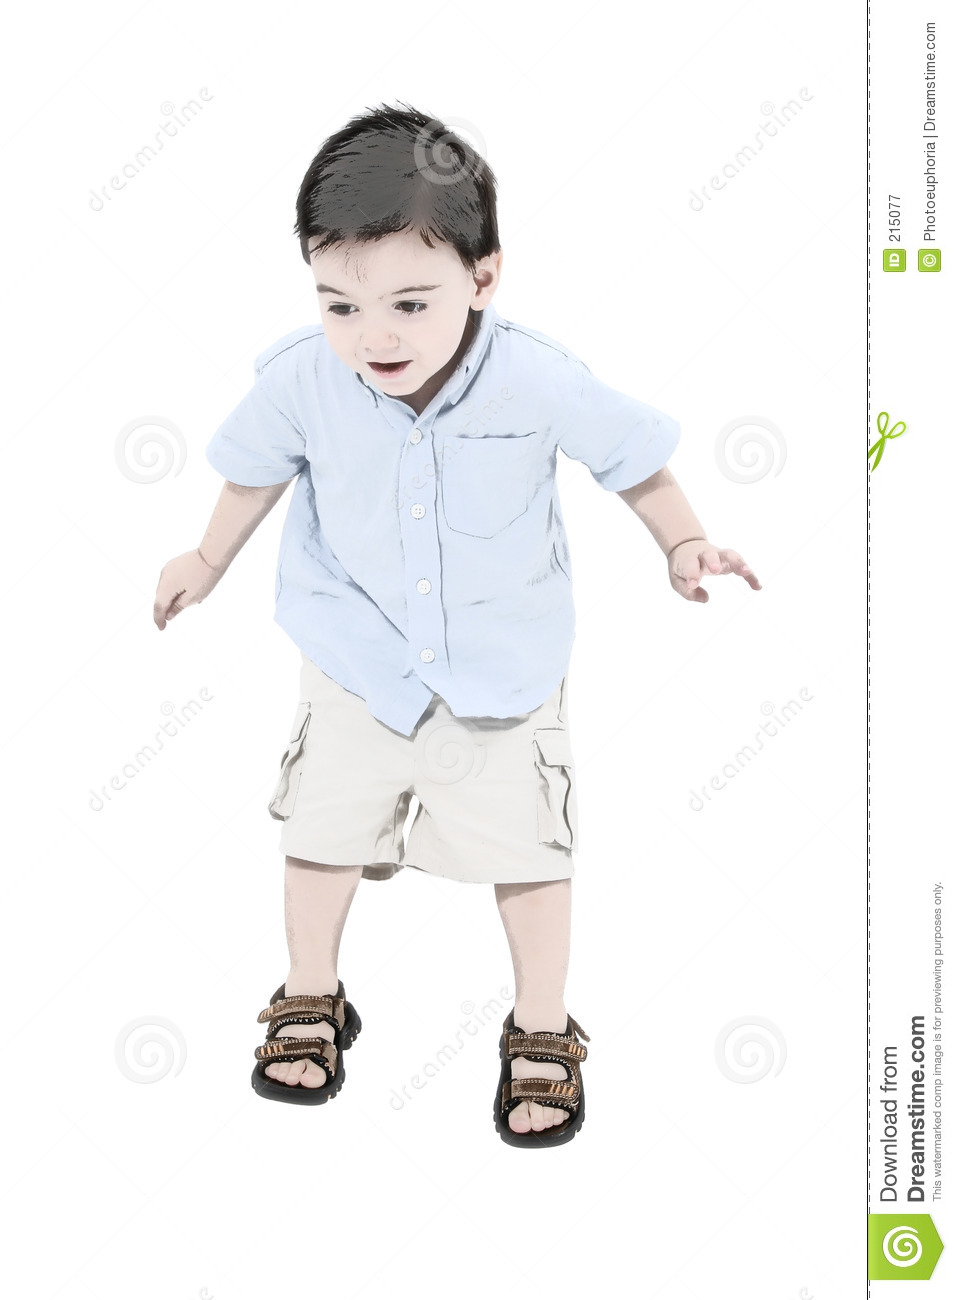 Illustration Toddler Boy Jumping Royalty Free Stock Photography